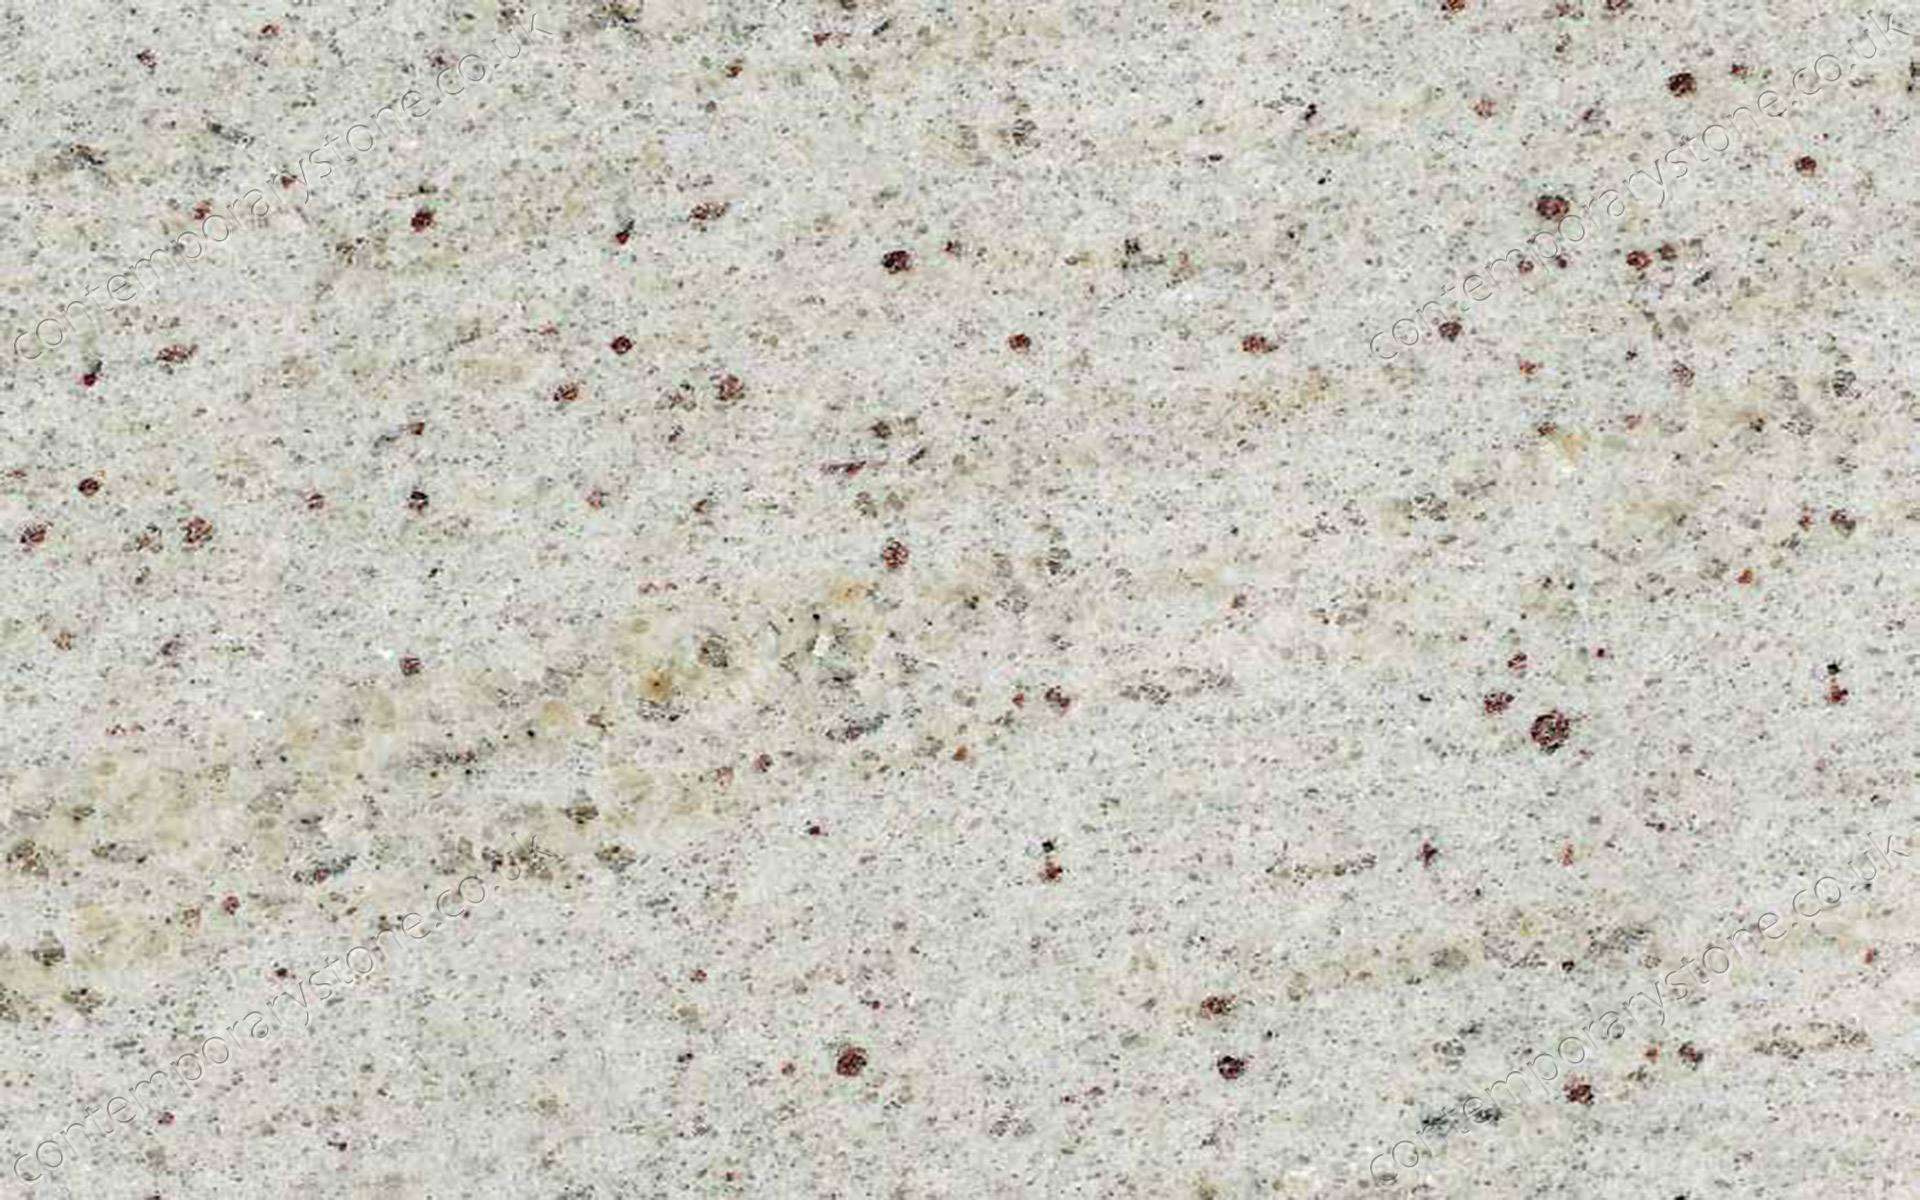 Kashmir White Granite : Granite Countertop Kashmir White And Kashmir Gold Jpg Pictures to pin ...